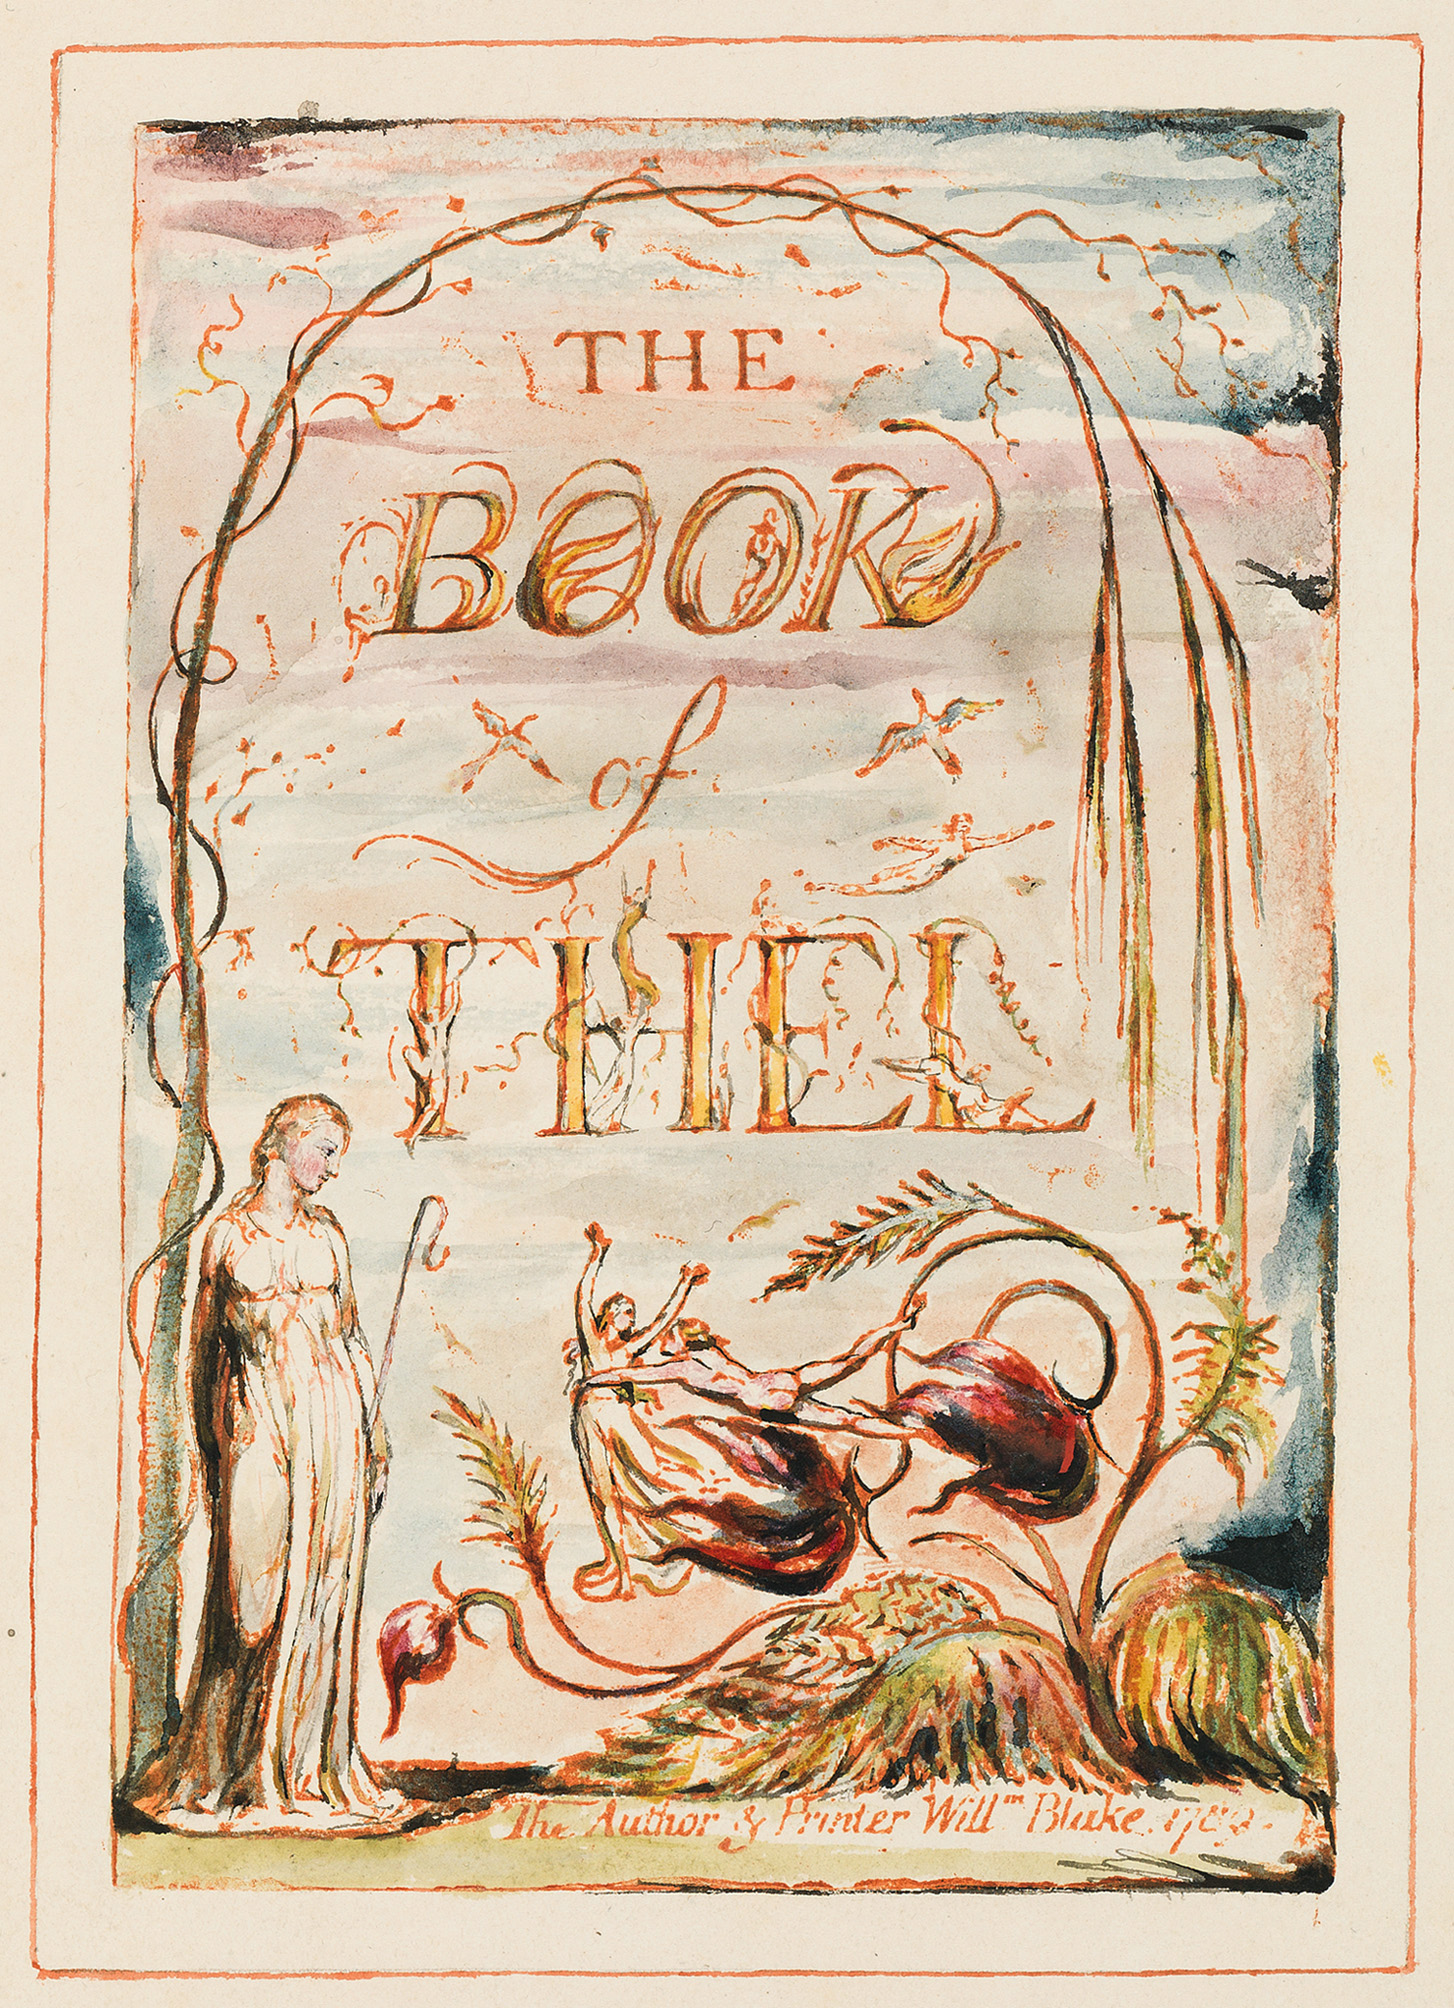 THE BOOK of THEL The Author & Printer Will m Blake. 1789.